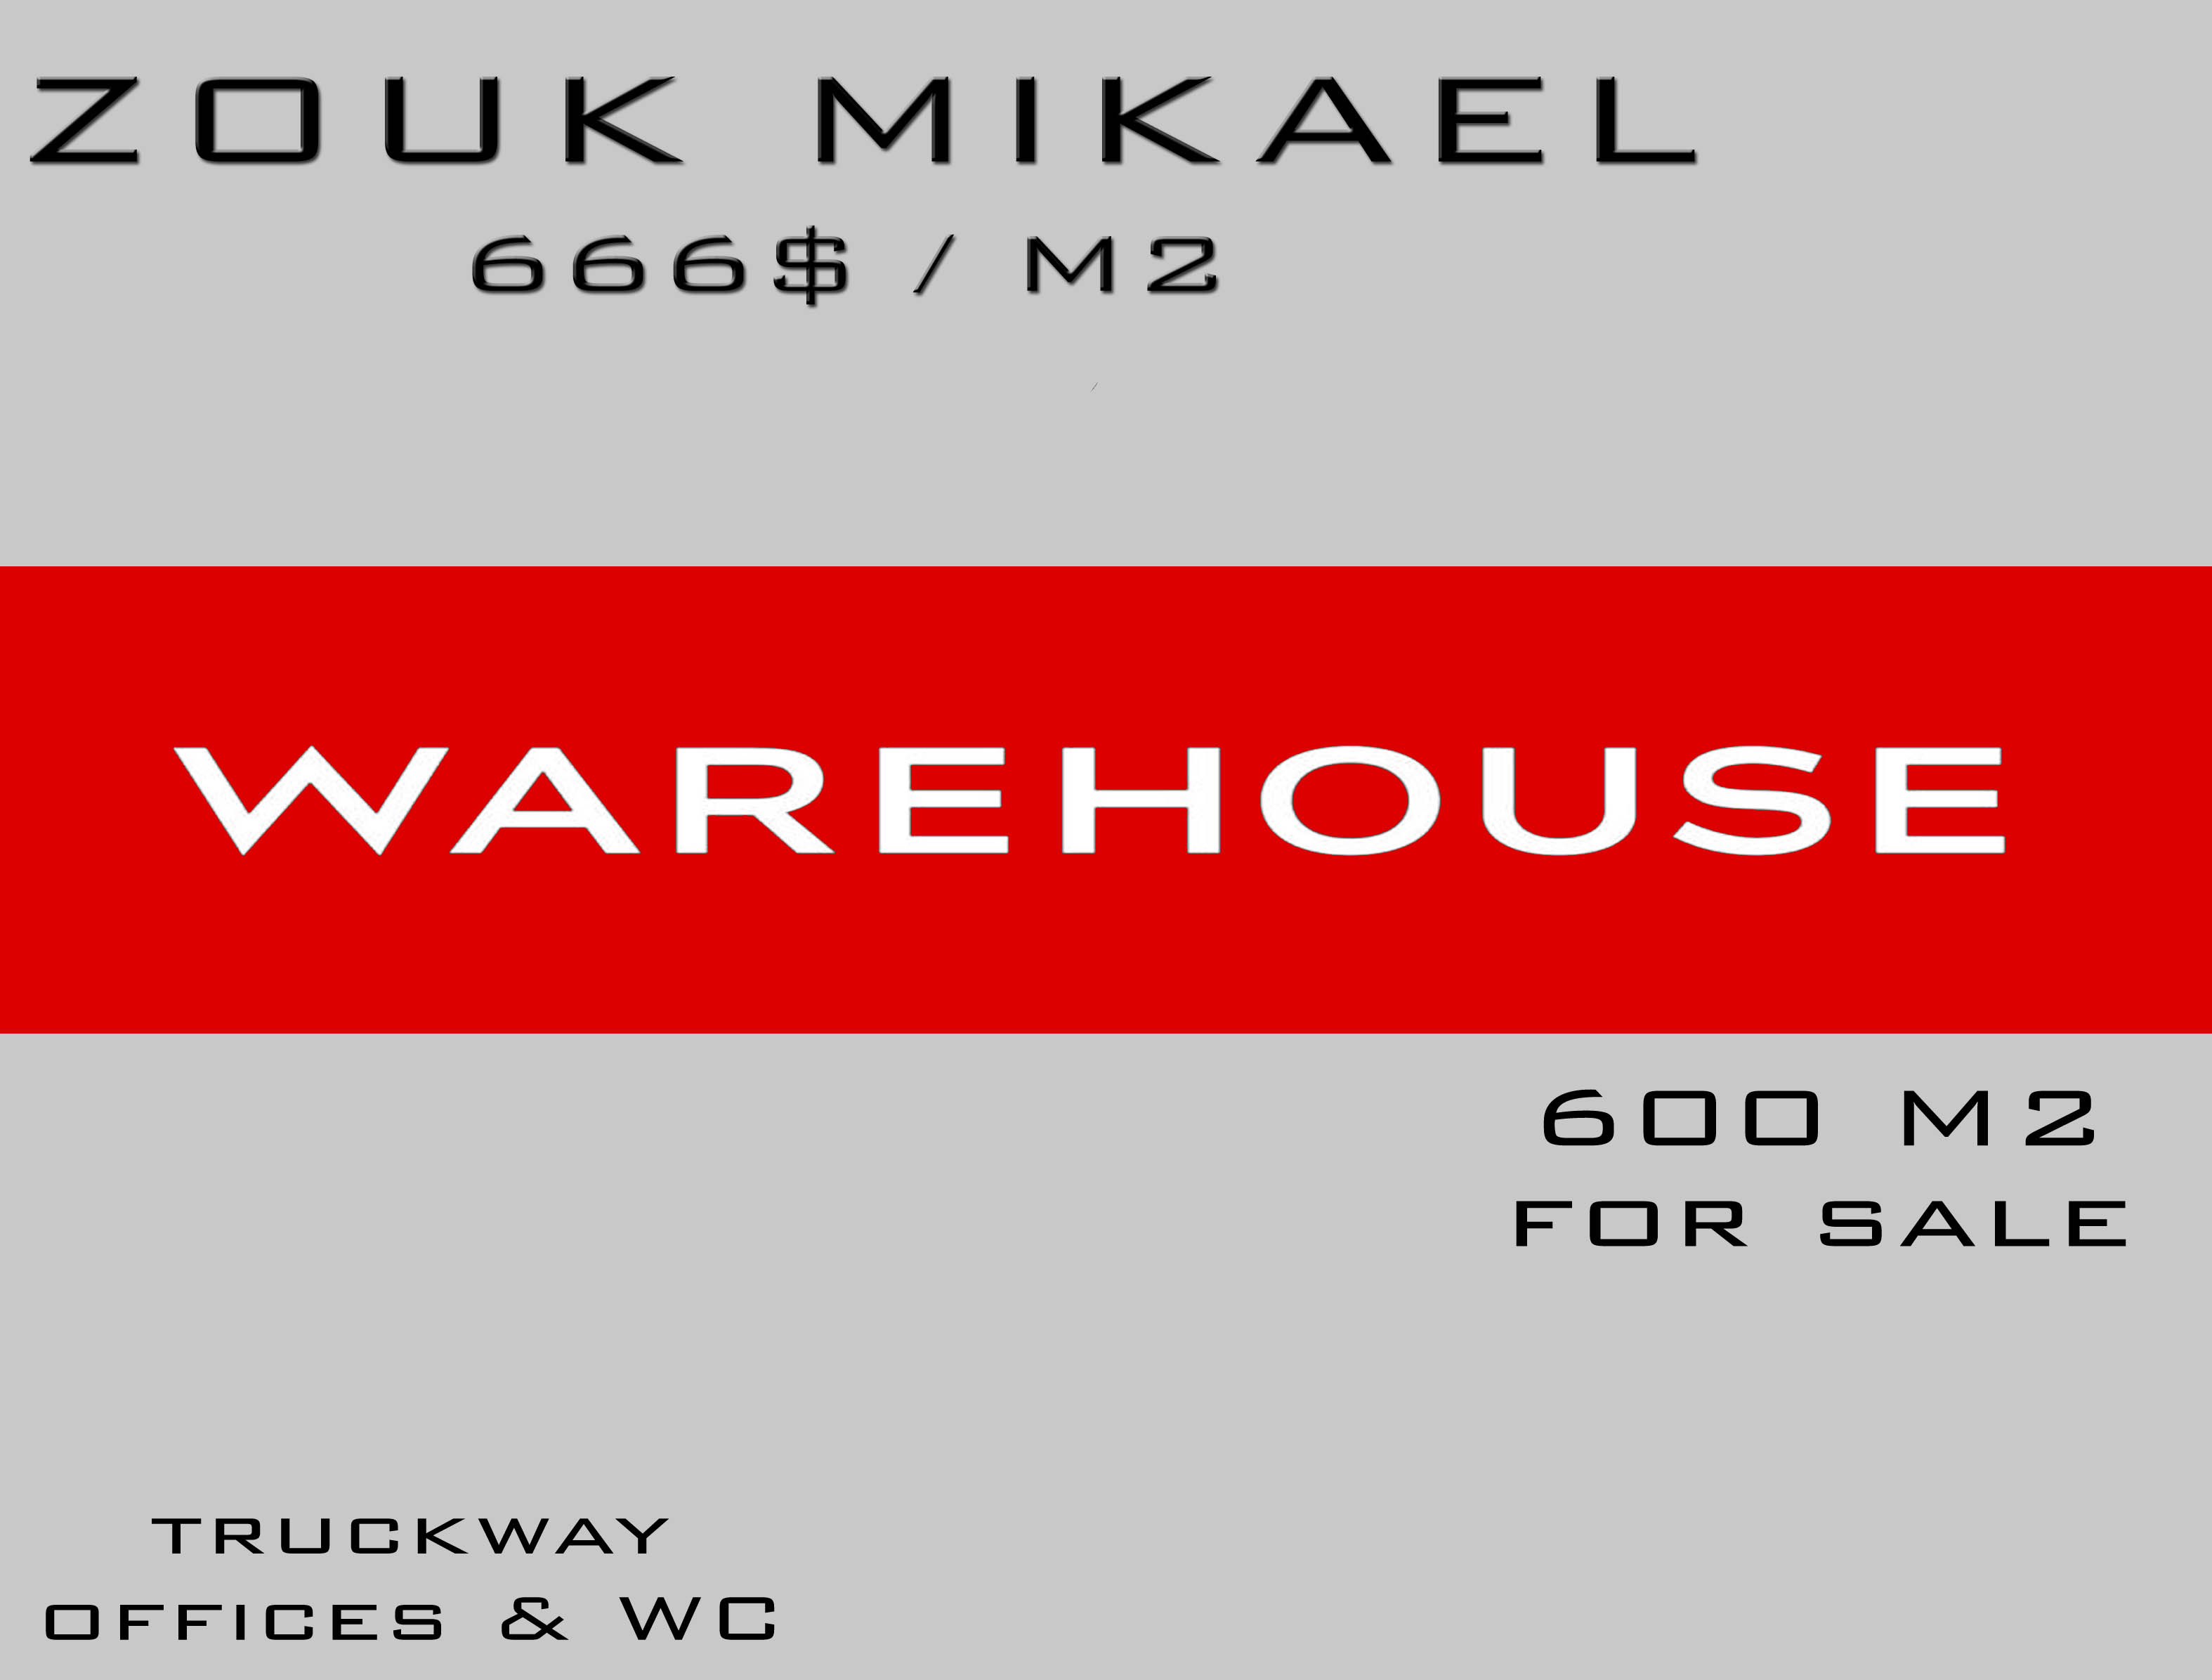 Warehouse for sale in keserwan lebanon - Real estate in lebanon - Buy and sell properties in lebanon